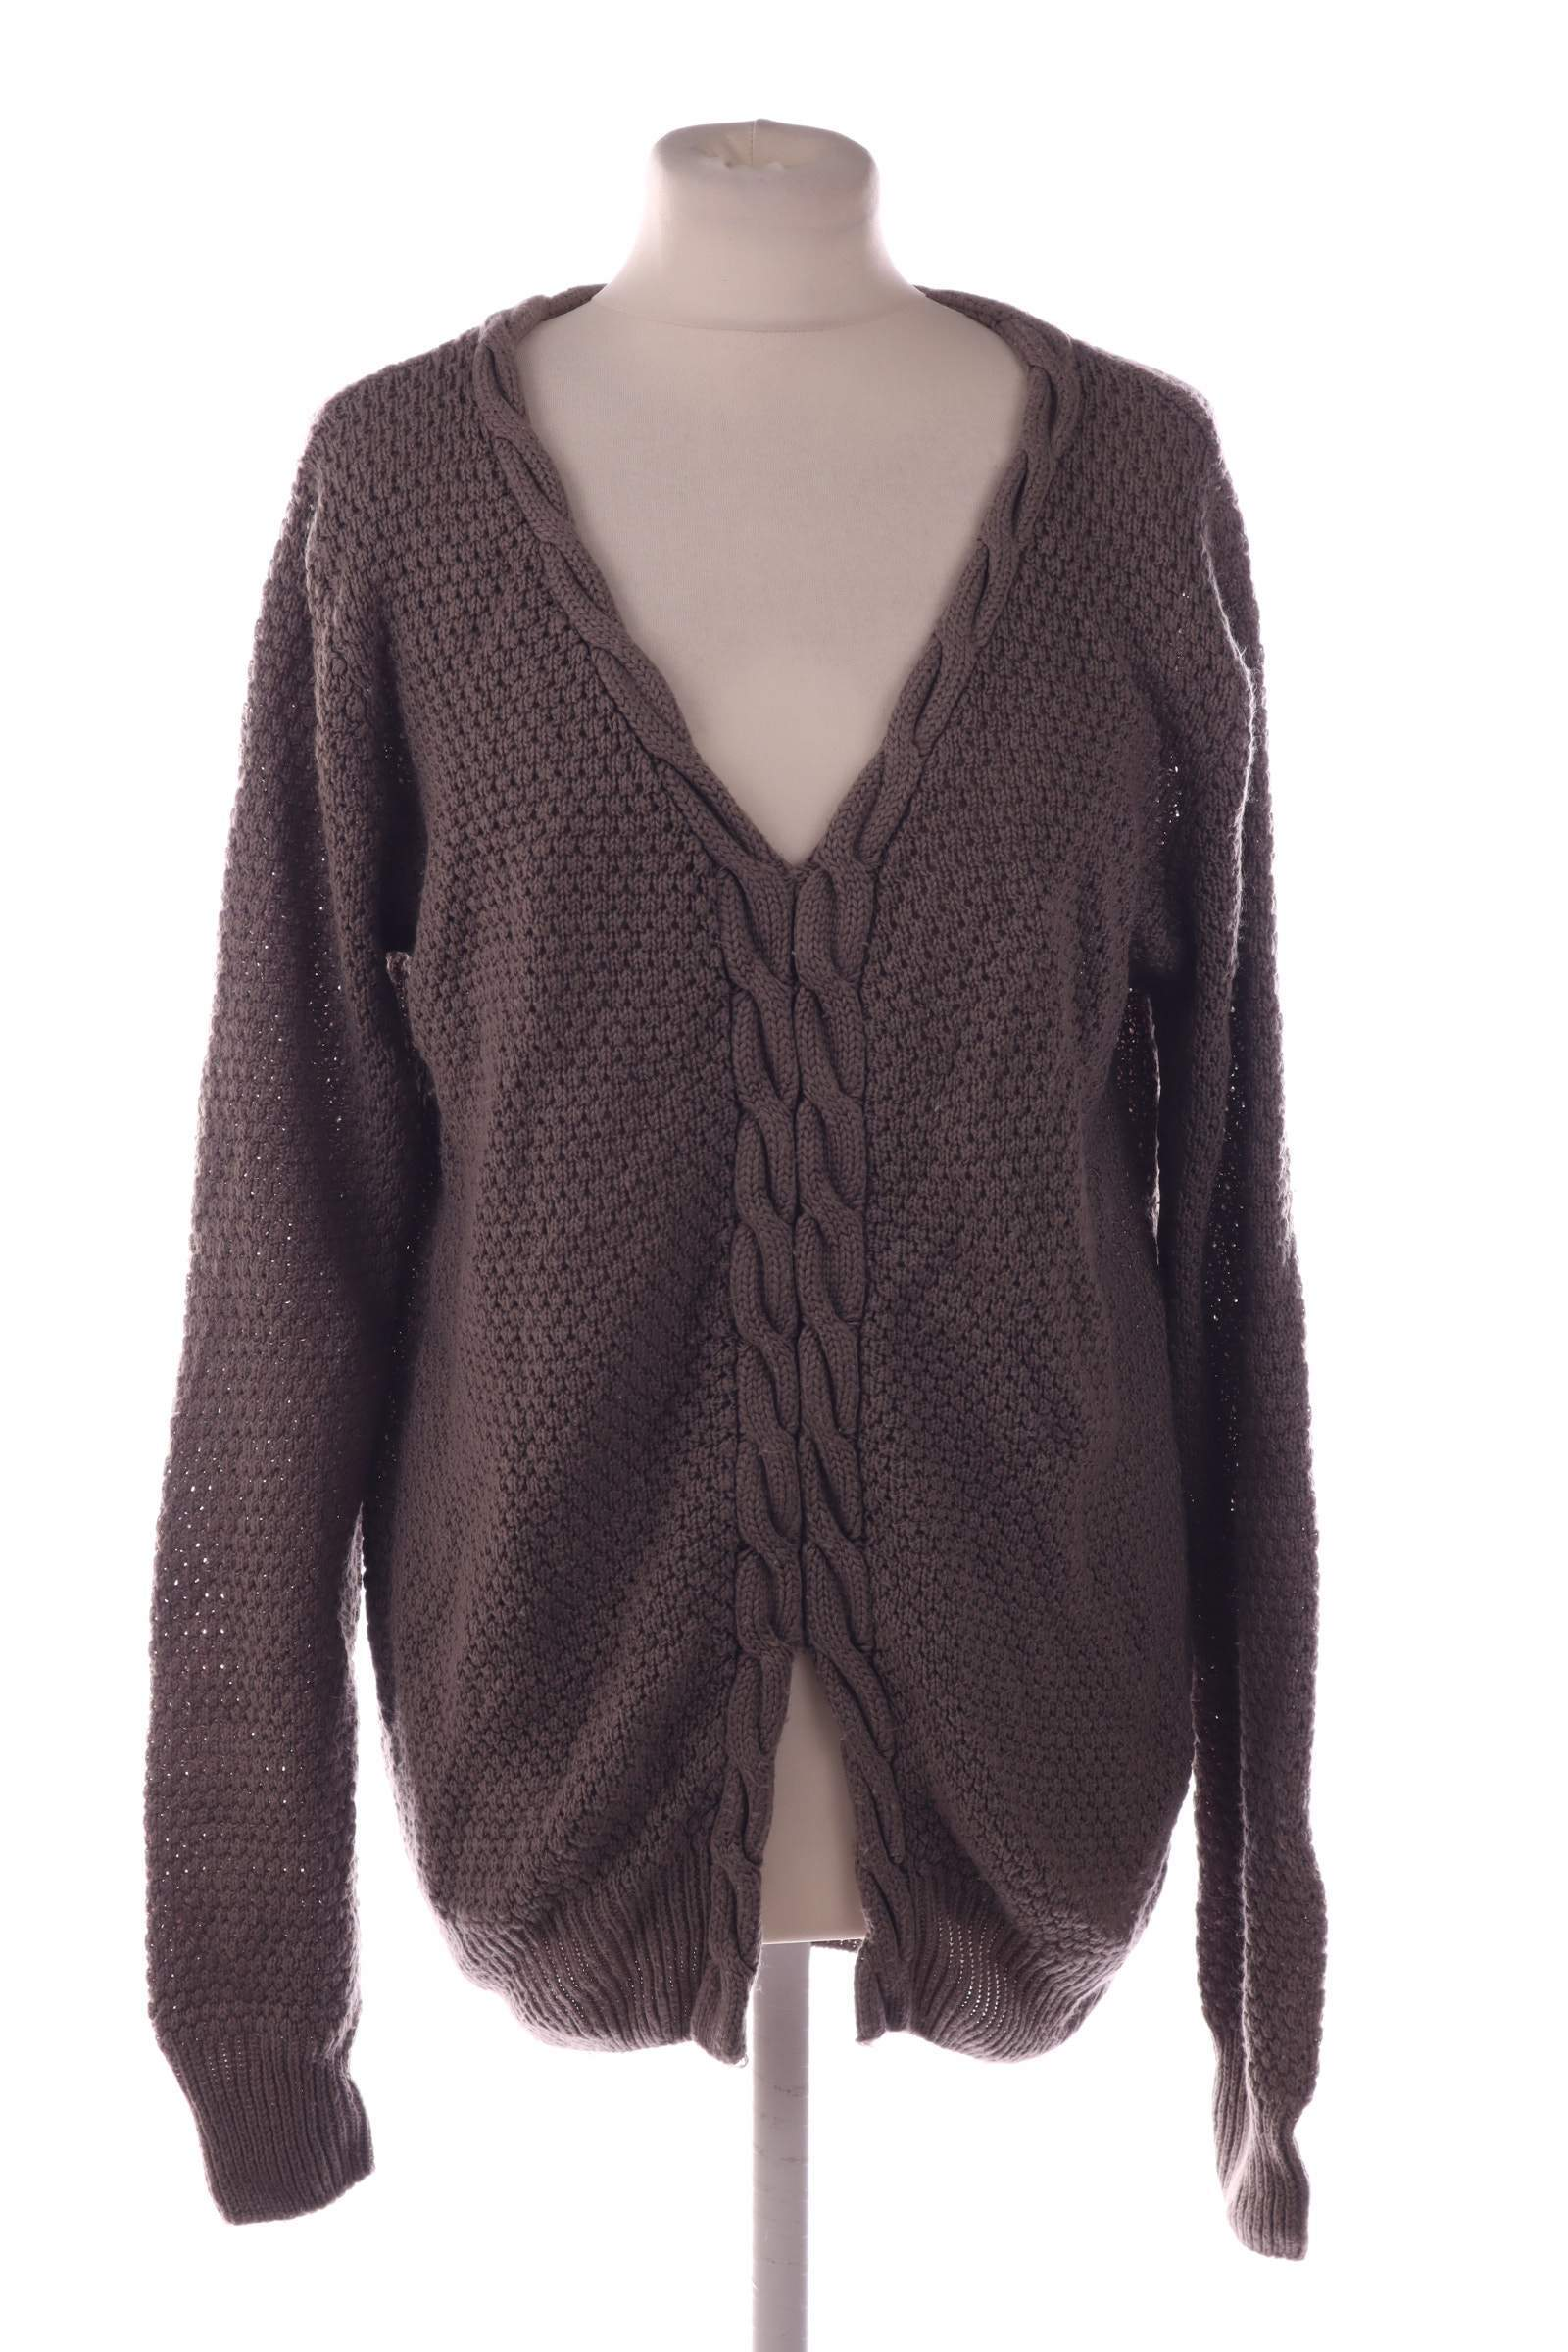 B.bocelli Brown Sweater - upty.store